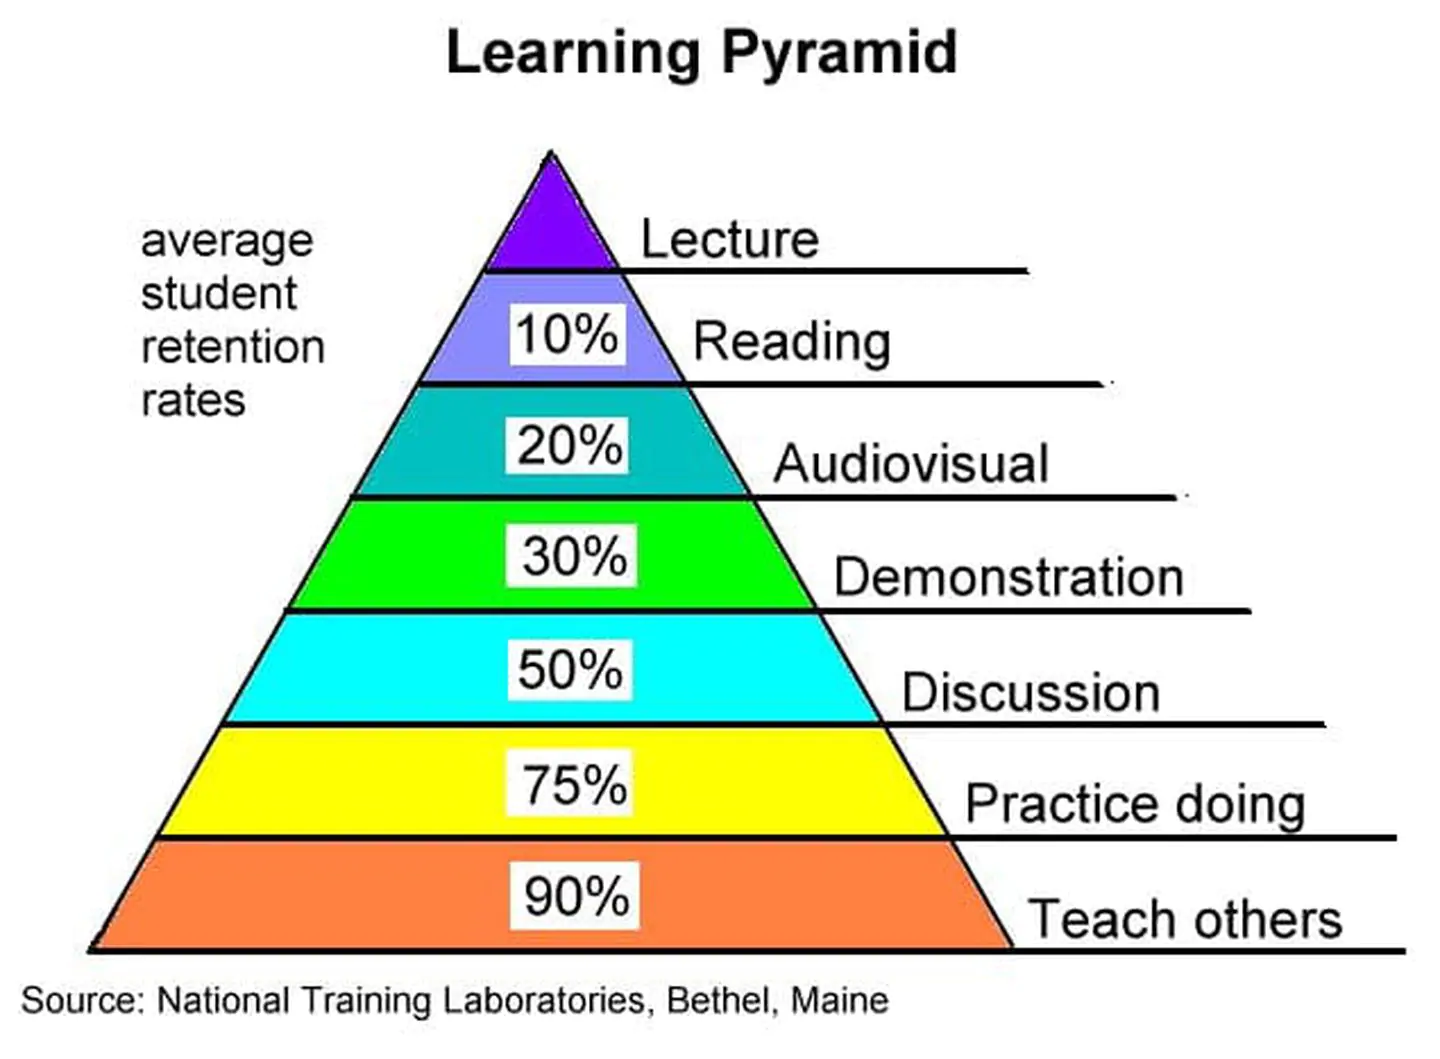 Image of Learning Pyramid Diagram